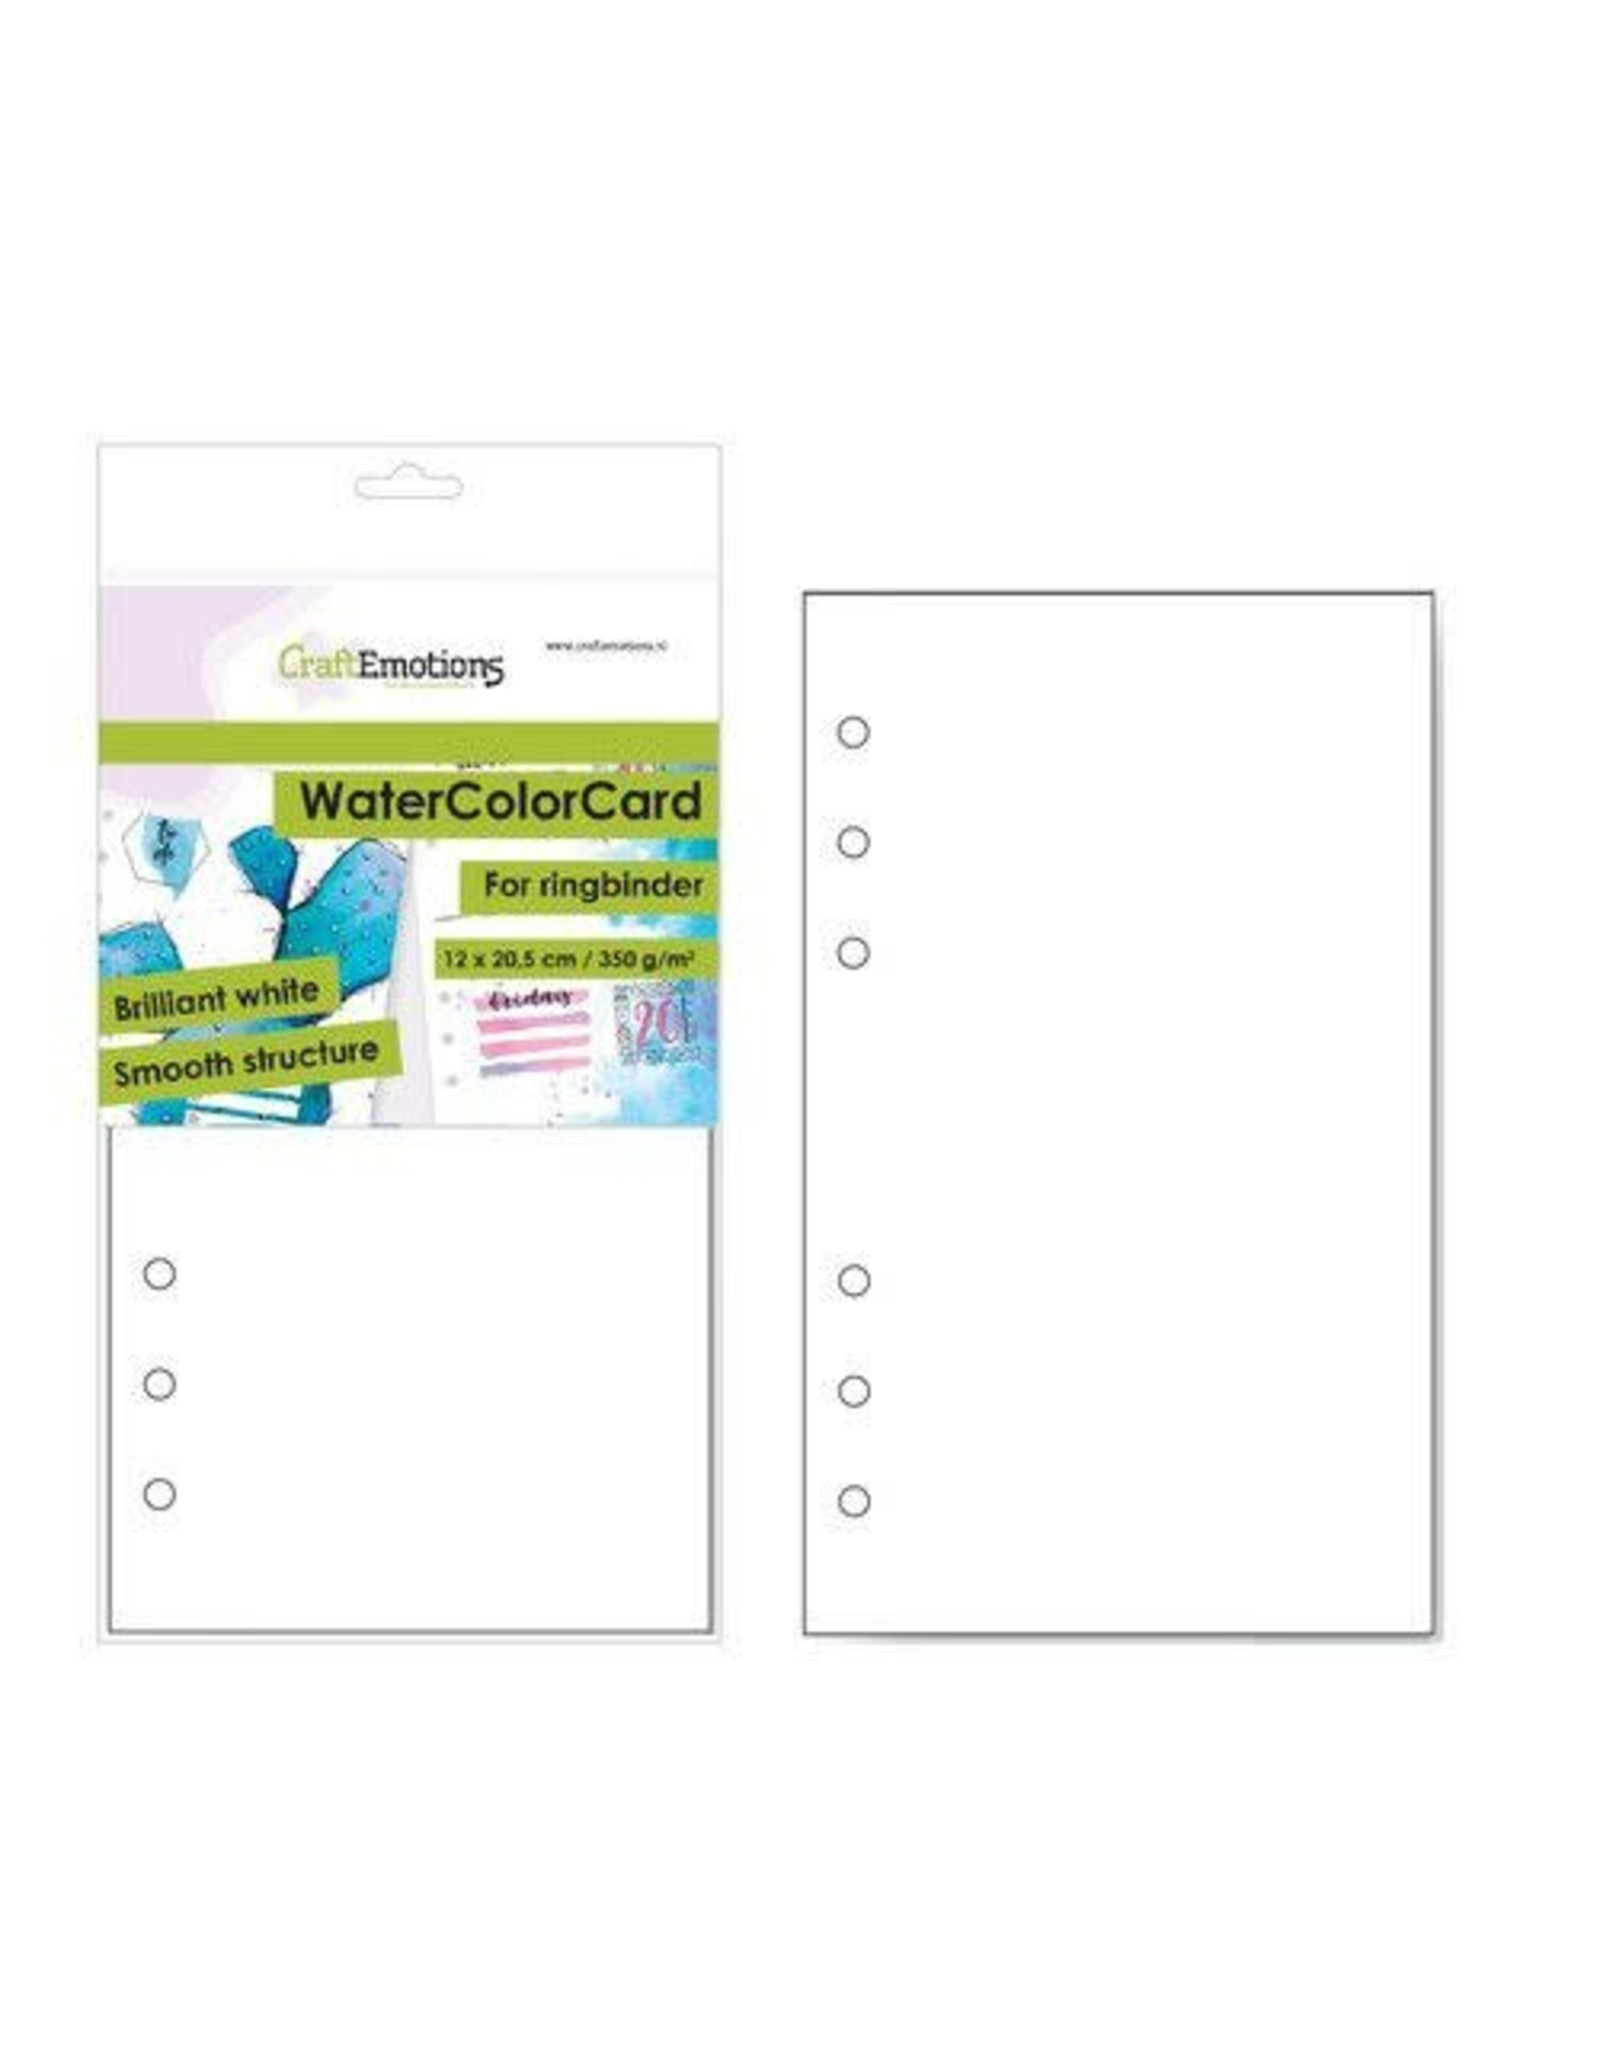 Craft Emotions CraftEmotions WaterColorCard - bril. Ringband wit 10 vl 12x20,5cm - 350 gr - 6 Ring A5